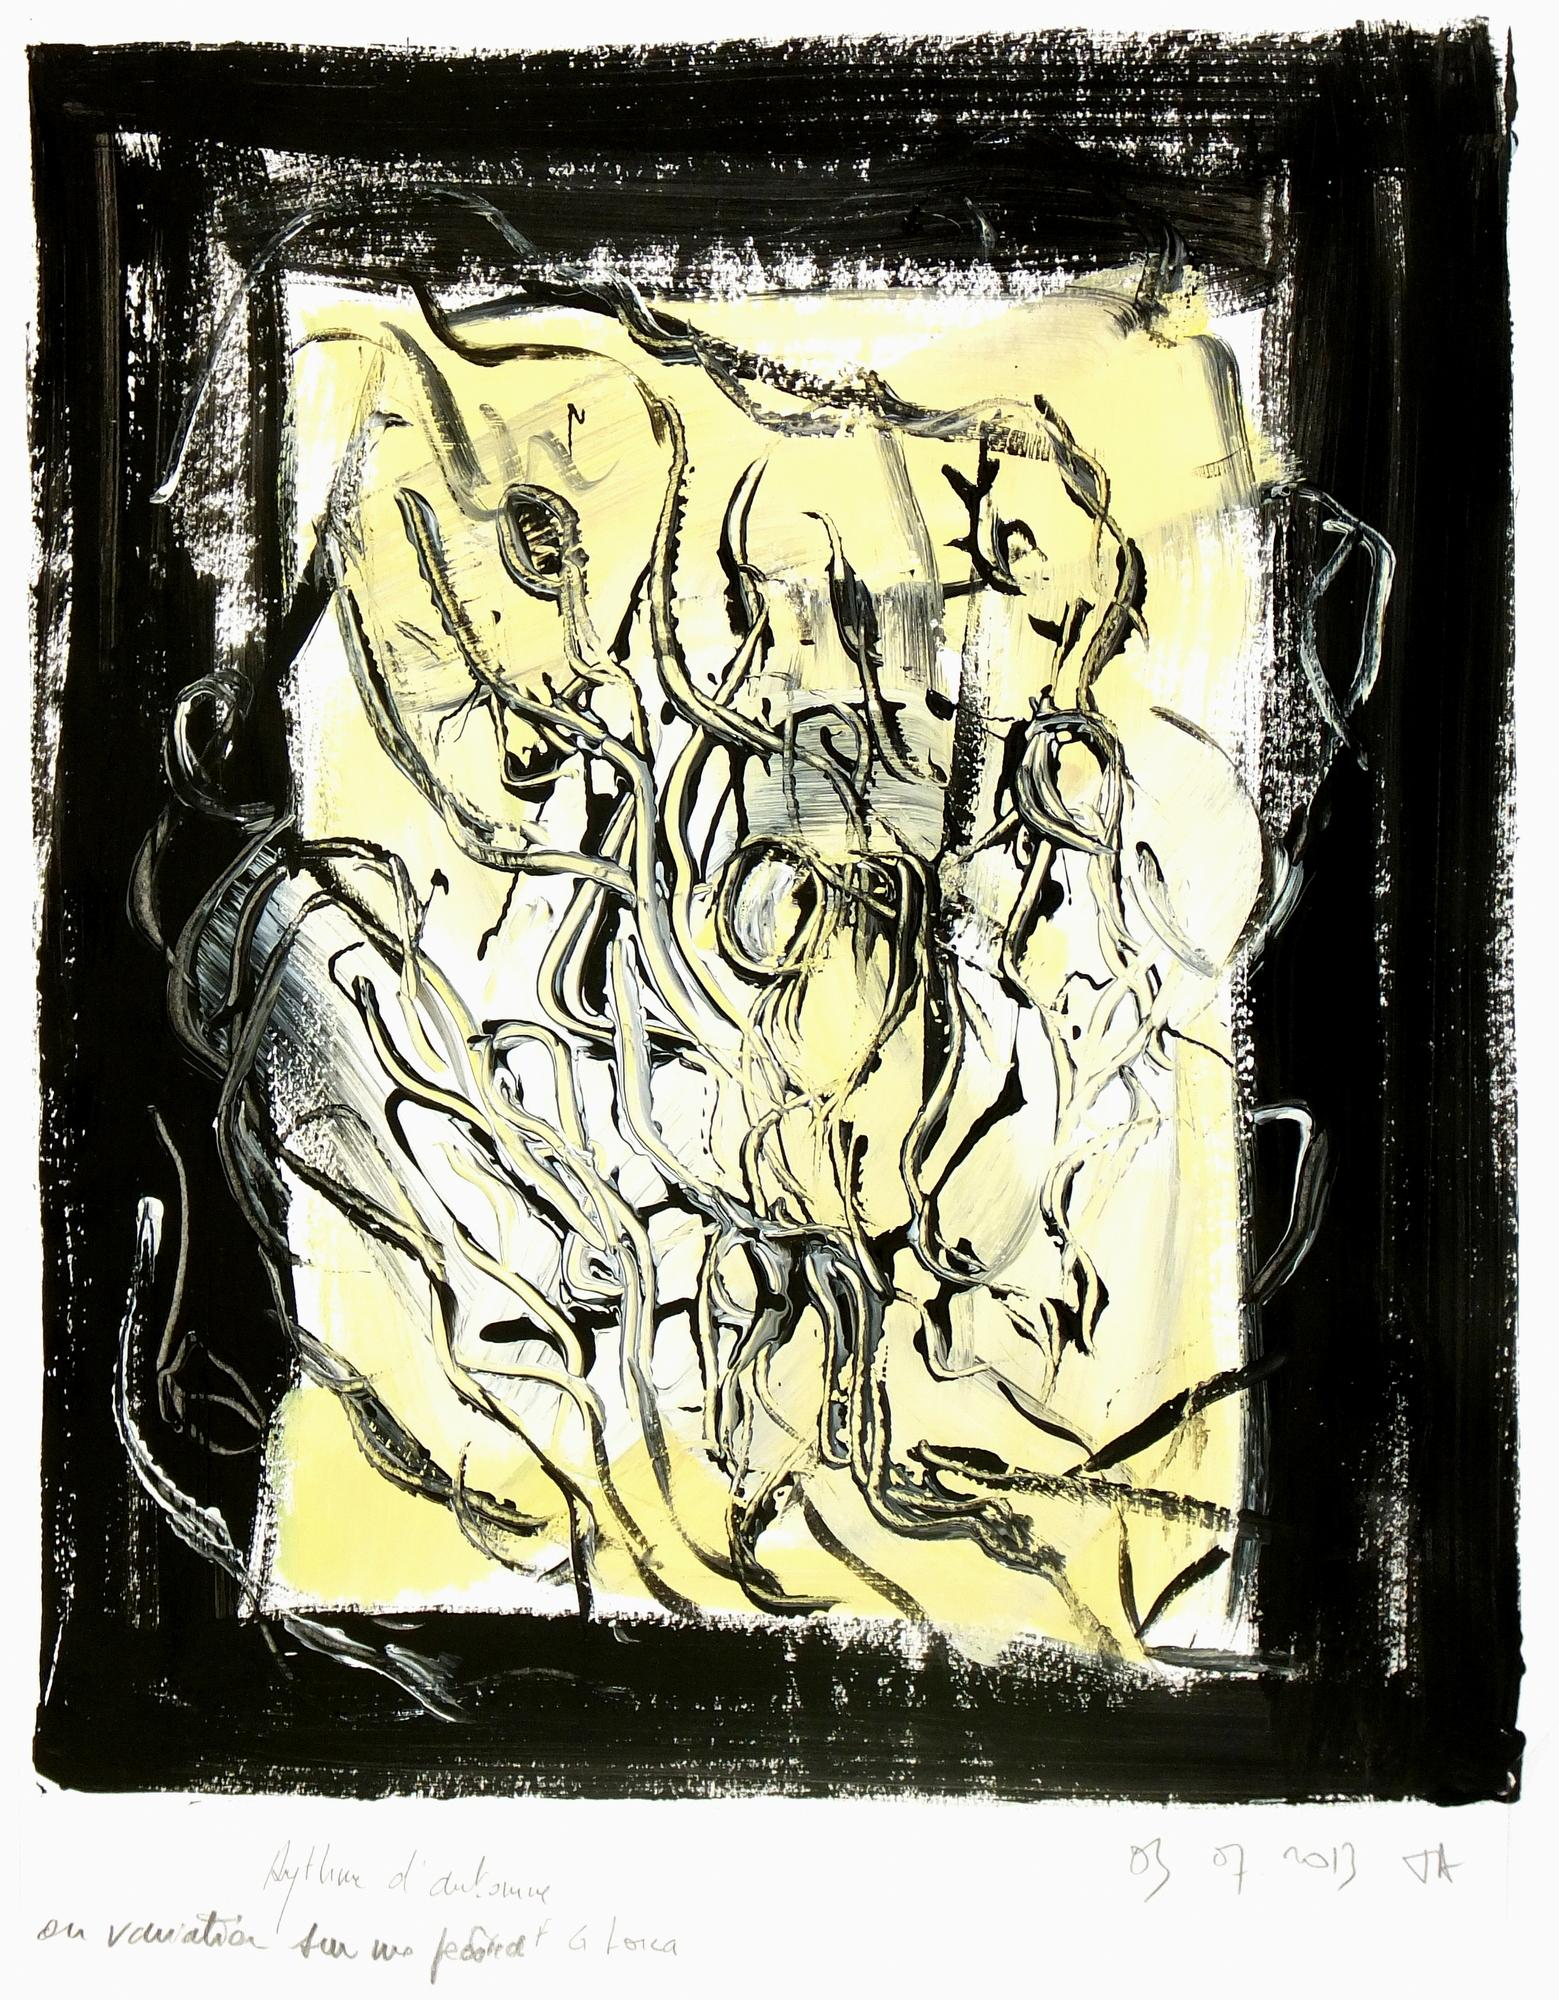 French Abstract Painting - Rythme d'Automne (Autumn Rhythm)